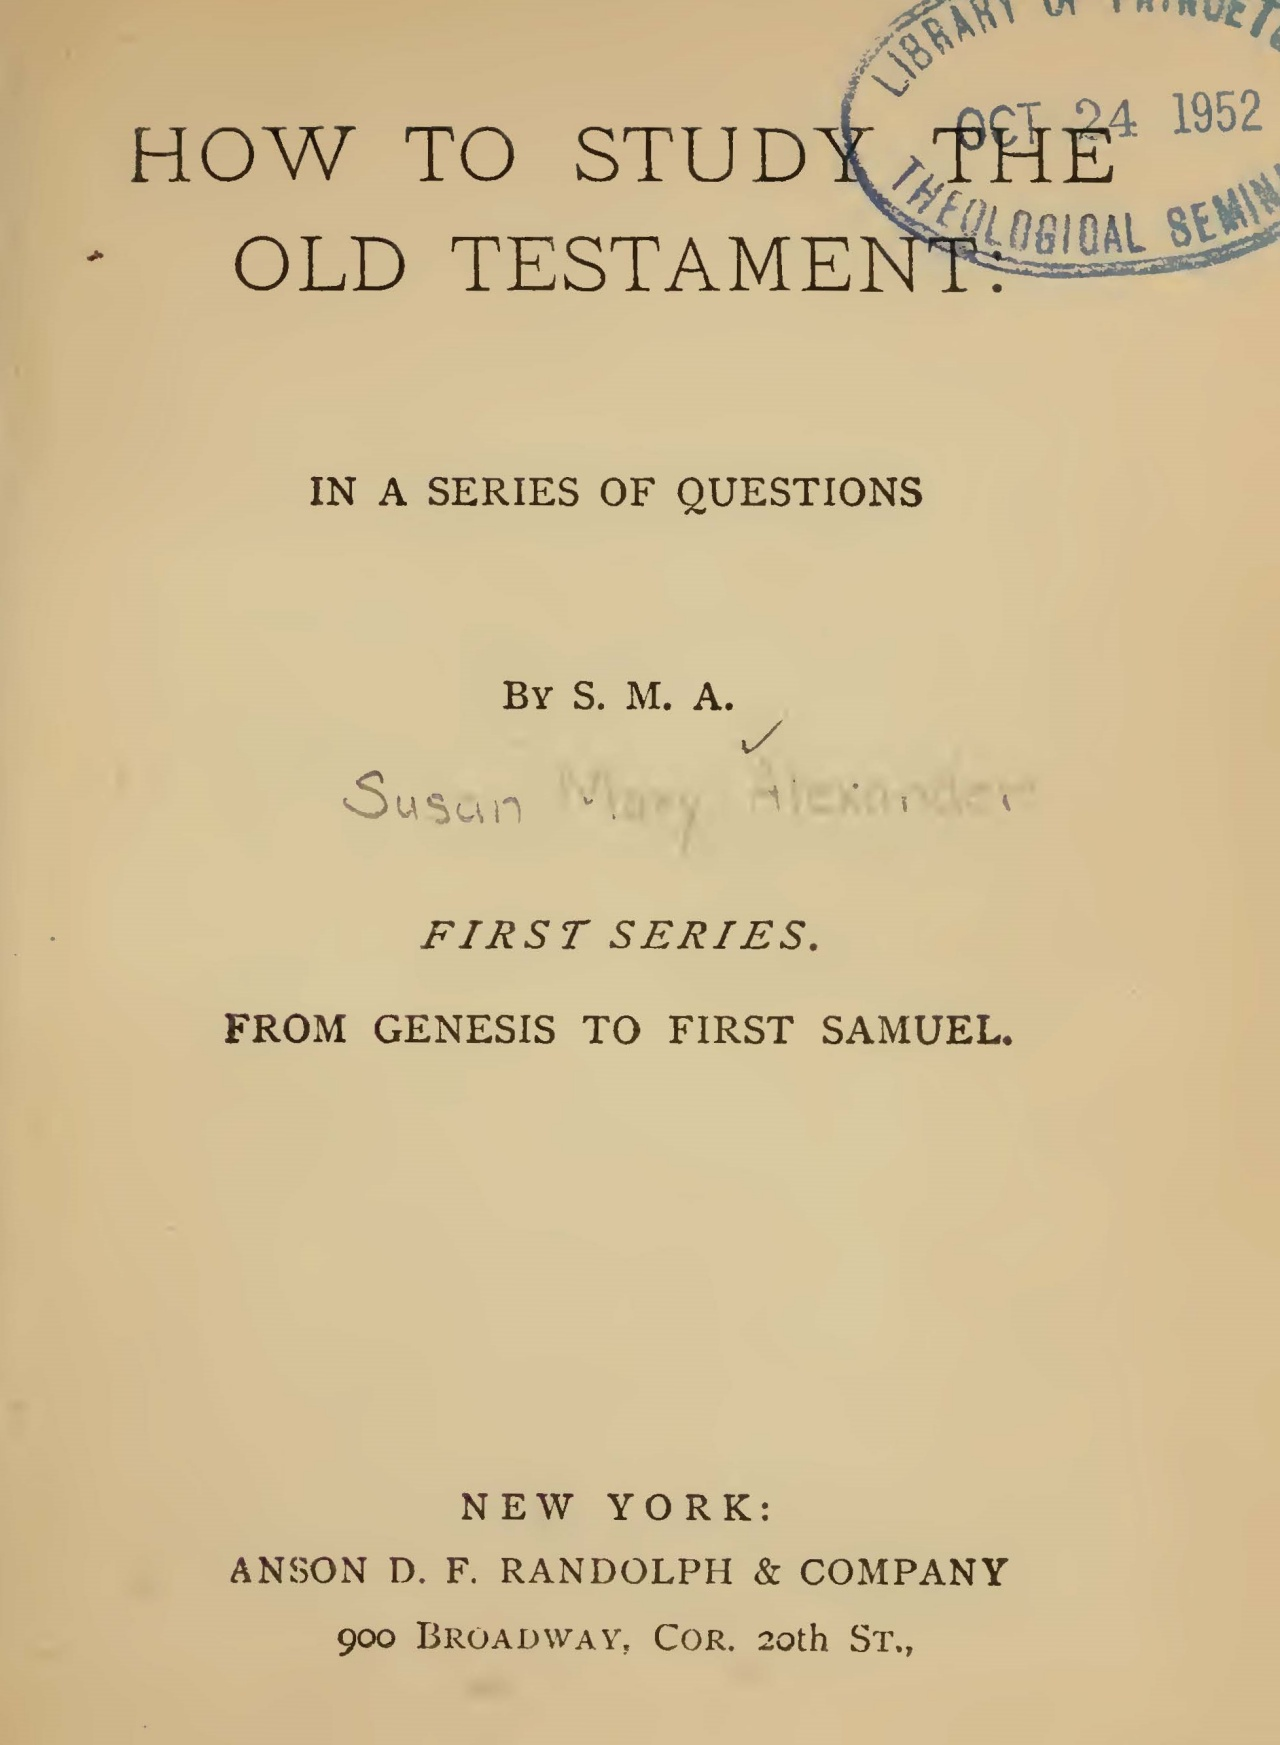 Alexander, Susan Mary Brown, How to Study the Old Testament, First Series, Genesis to First Samuel Title Page.jpg